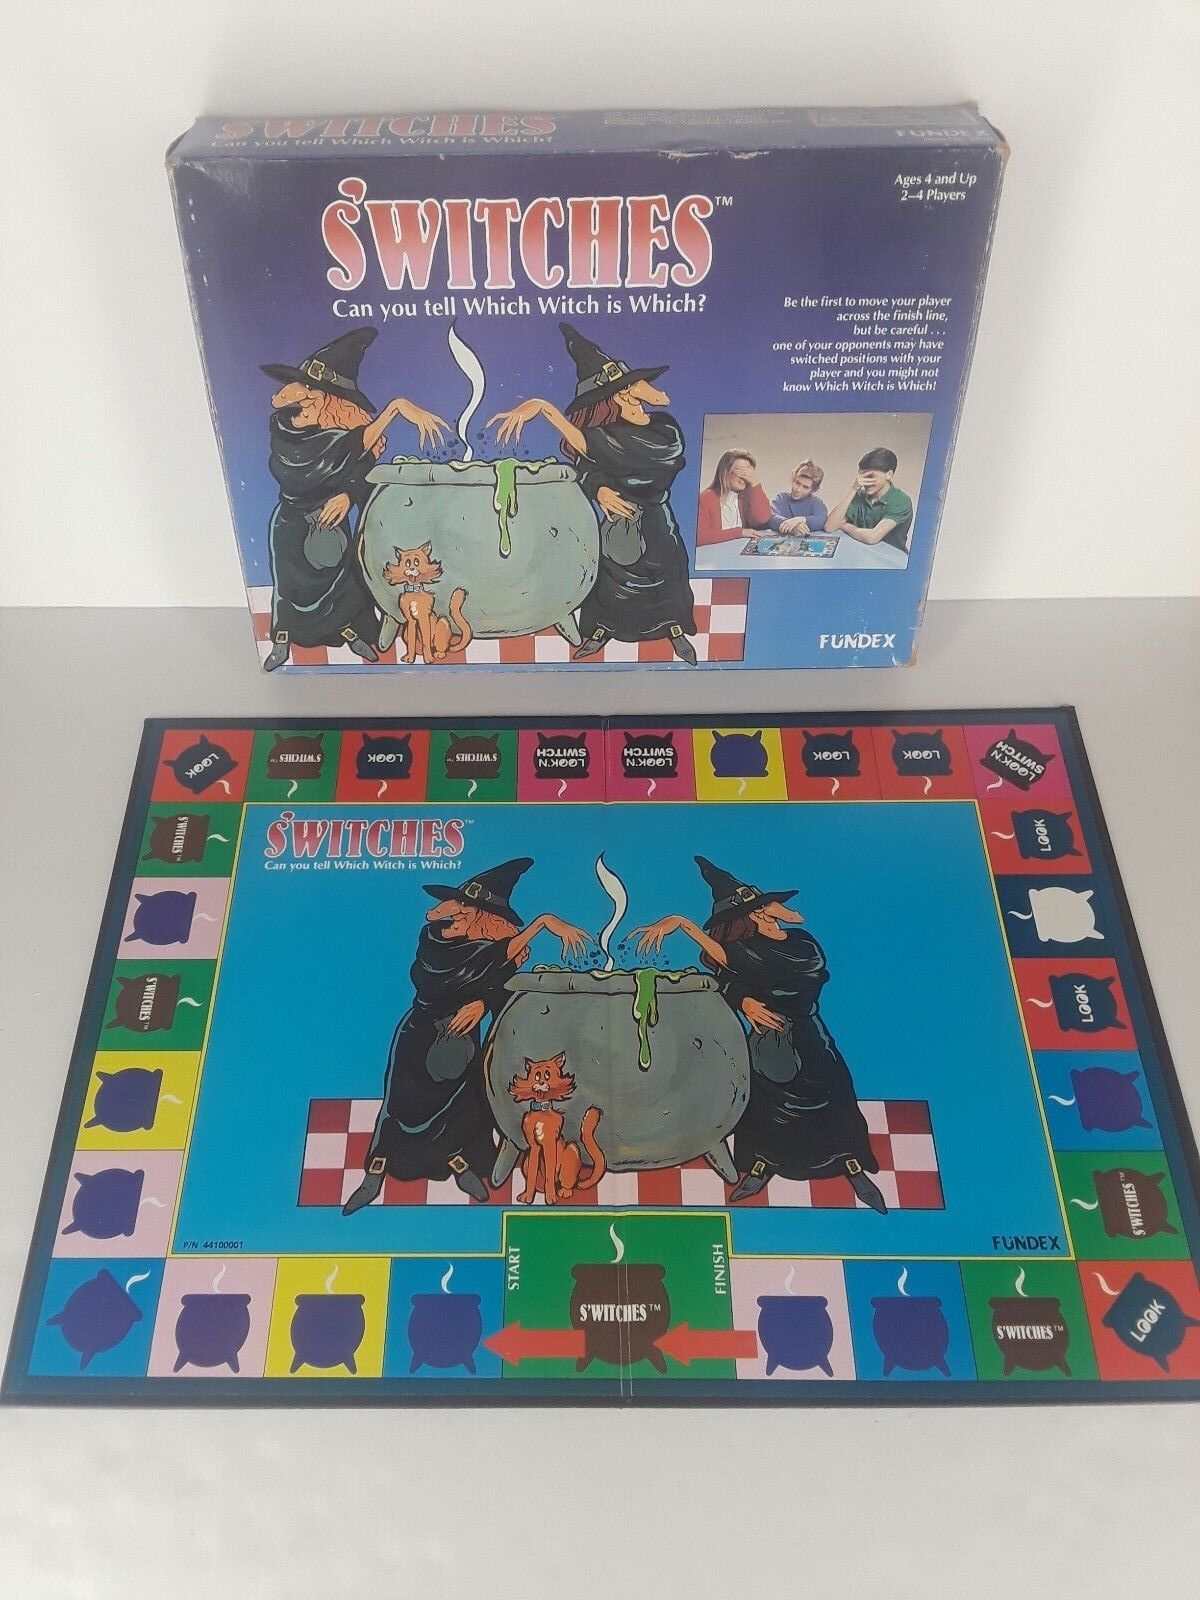 S'Witches 1989 Vintage Fundex Game Box and Board Not Complete Halloween Witches